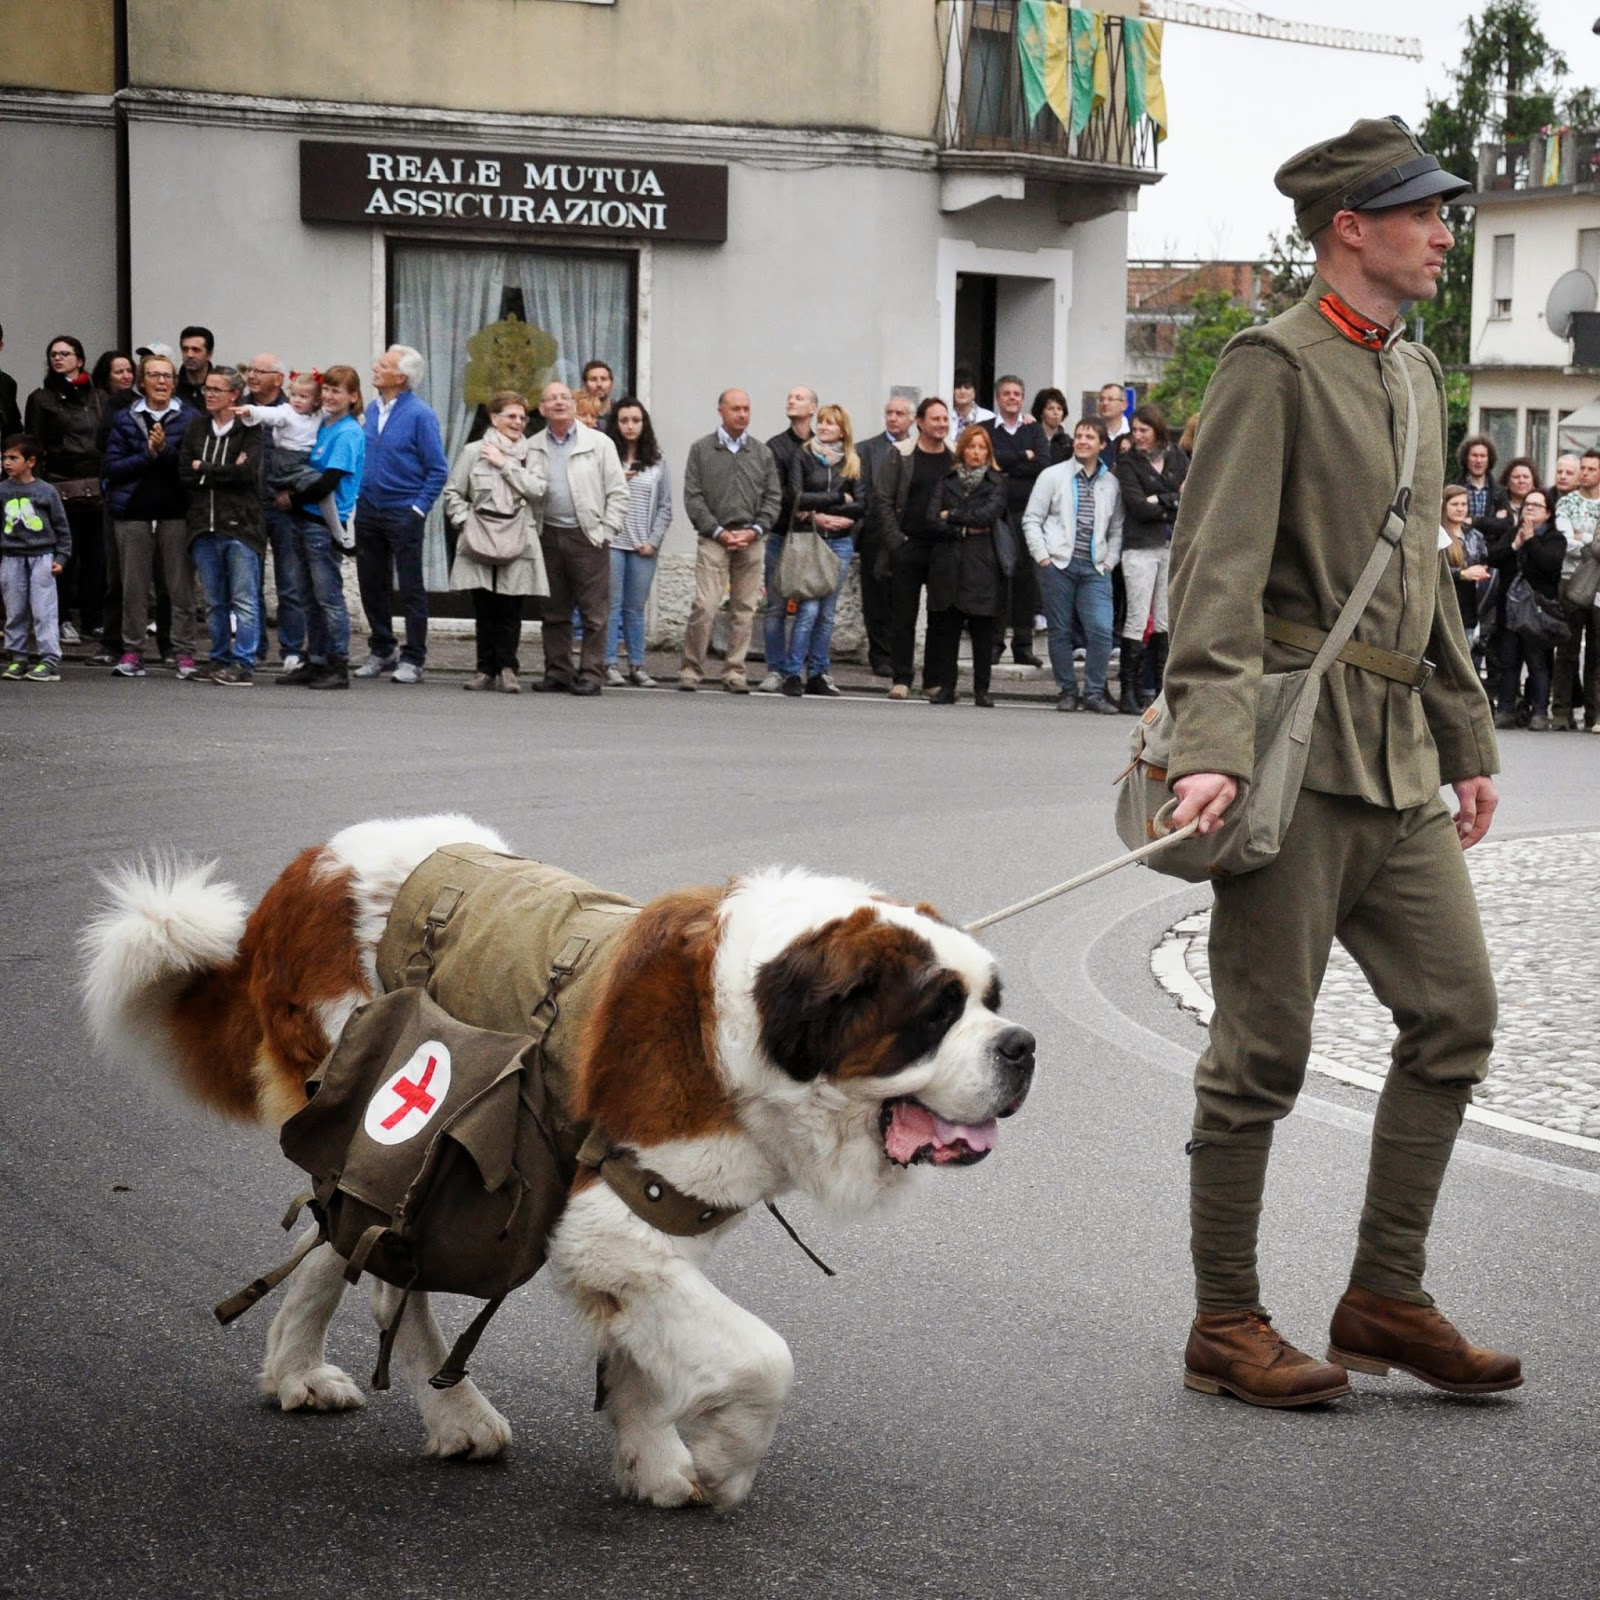 A Saint Bernard at the Parade, Donkey Race, Romano d'Ezzelino, Veneto, Italy